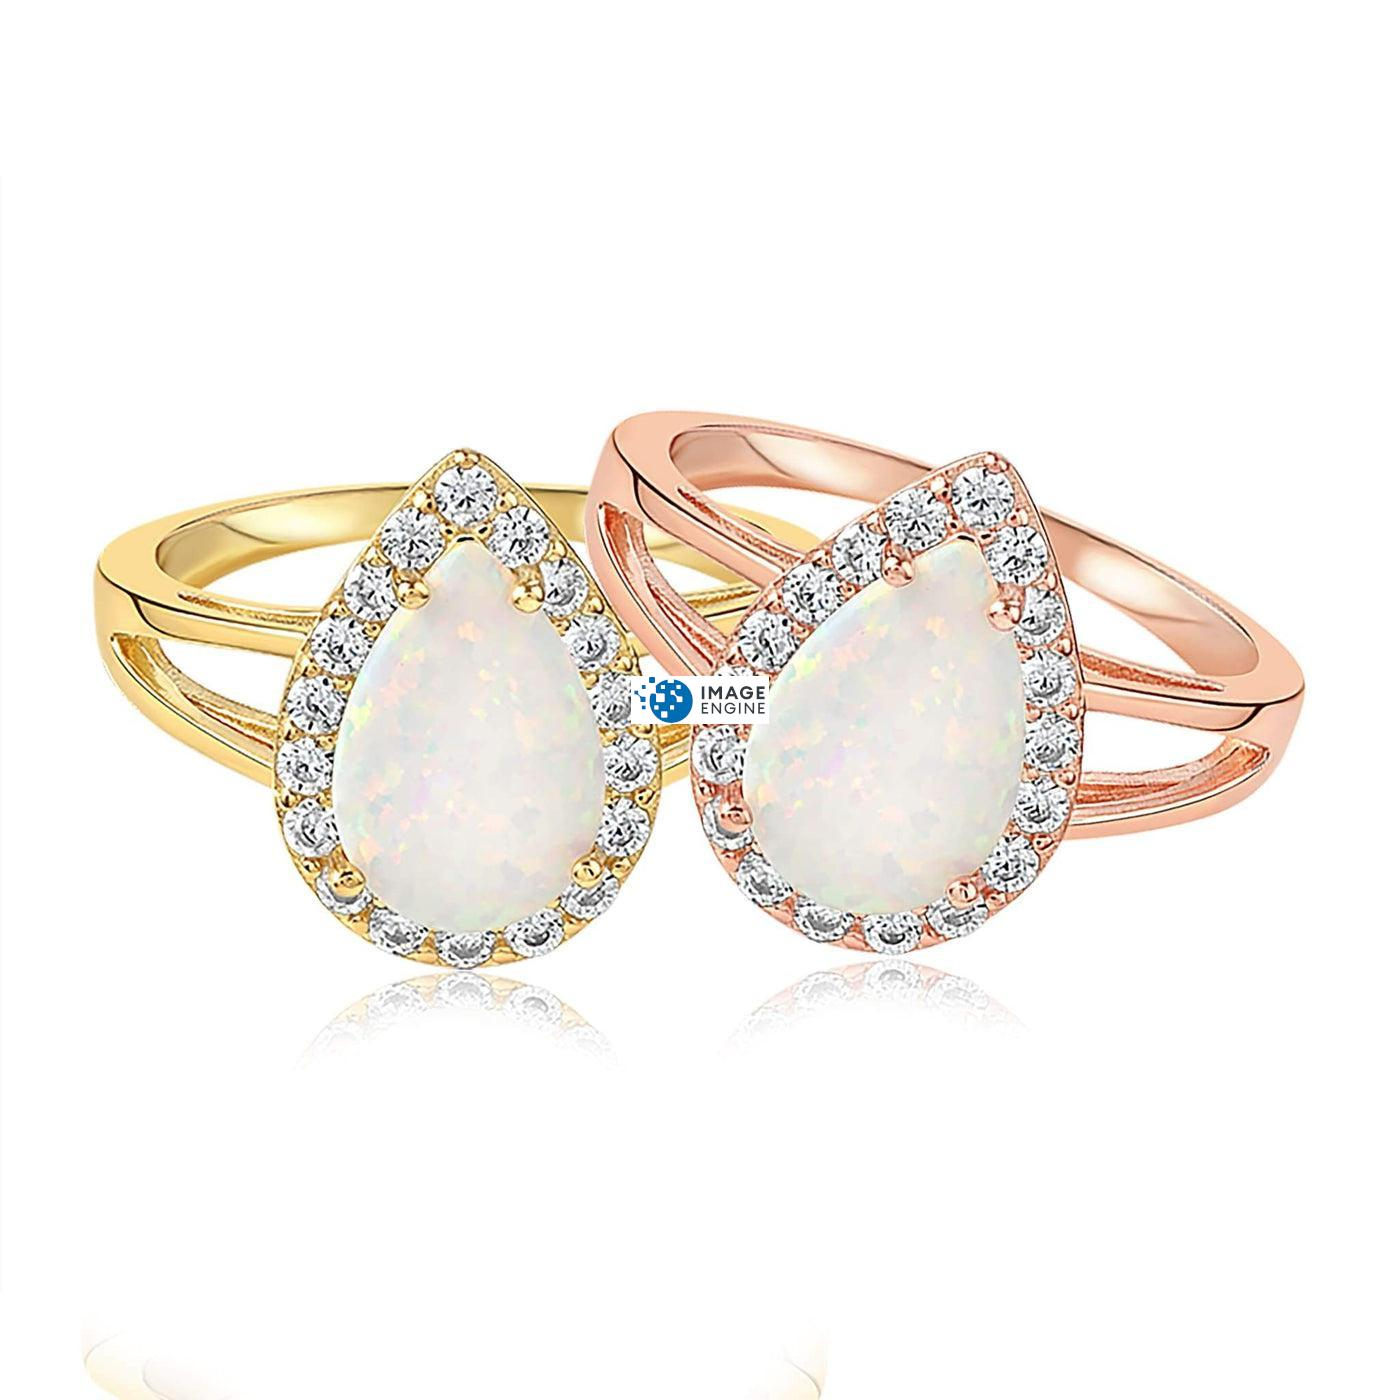 White Fire Champagne Opal Ring - Front View Side by Side - 18K Rose Gold Vermeil and 18K Yellow Gold Vermeil